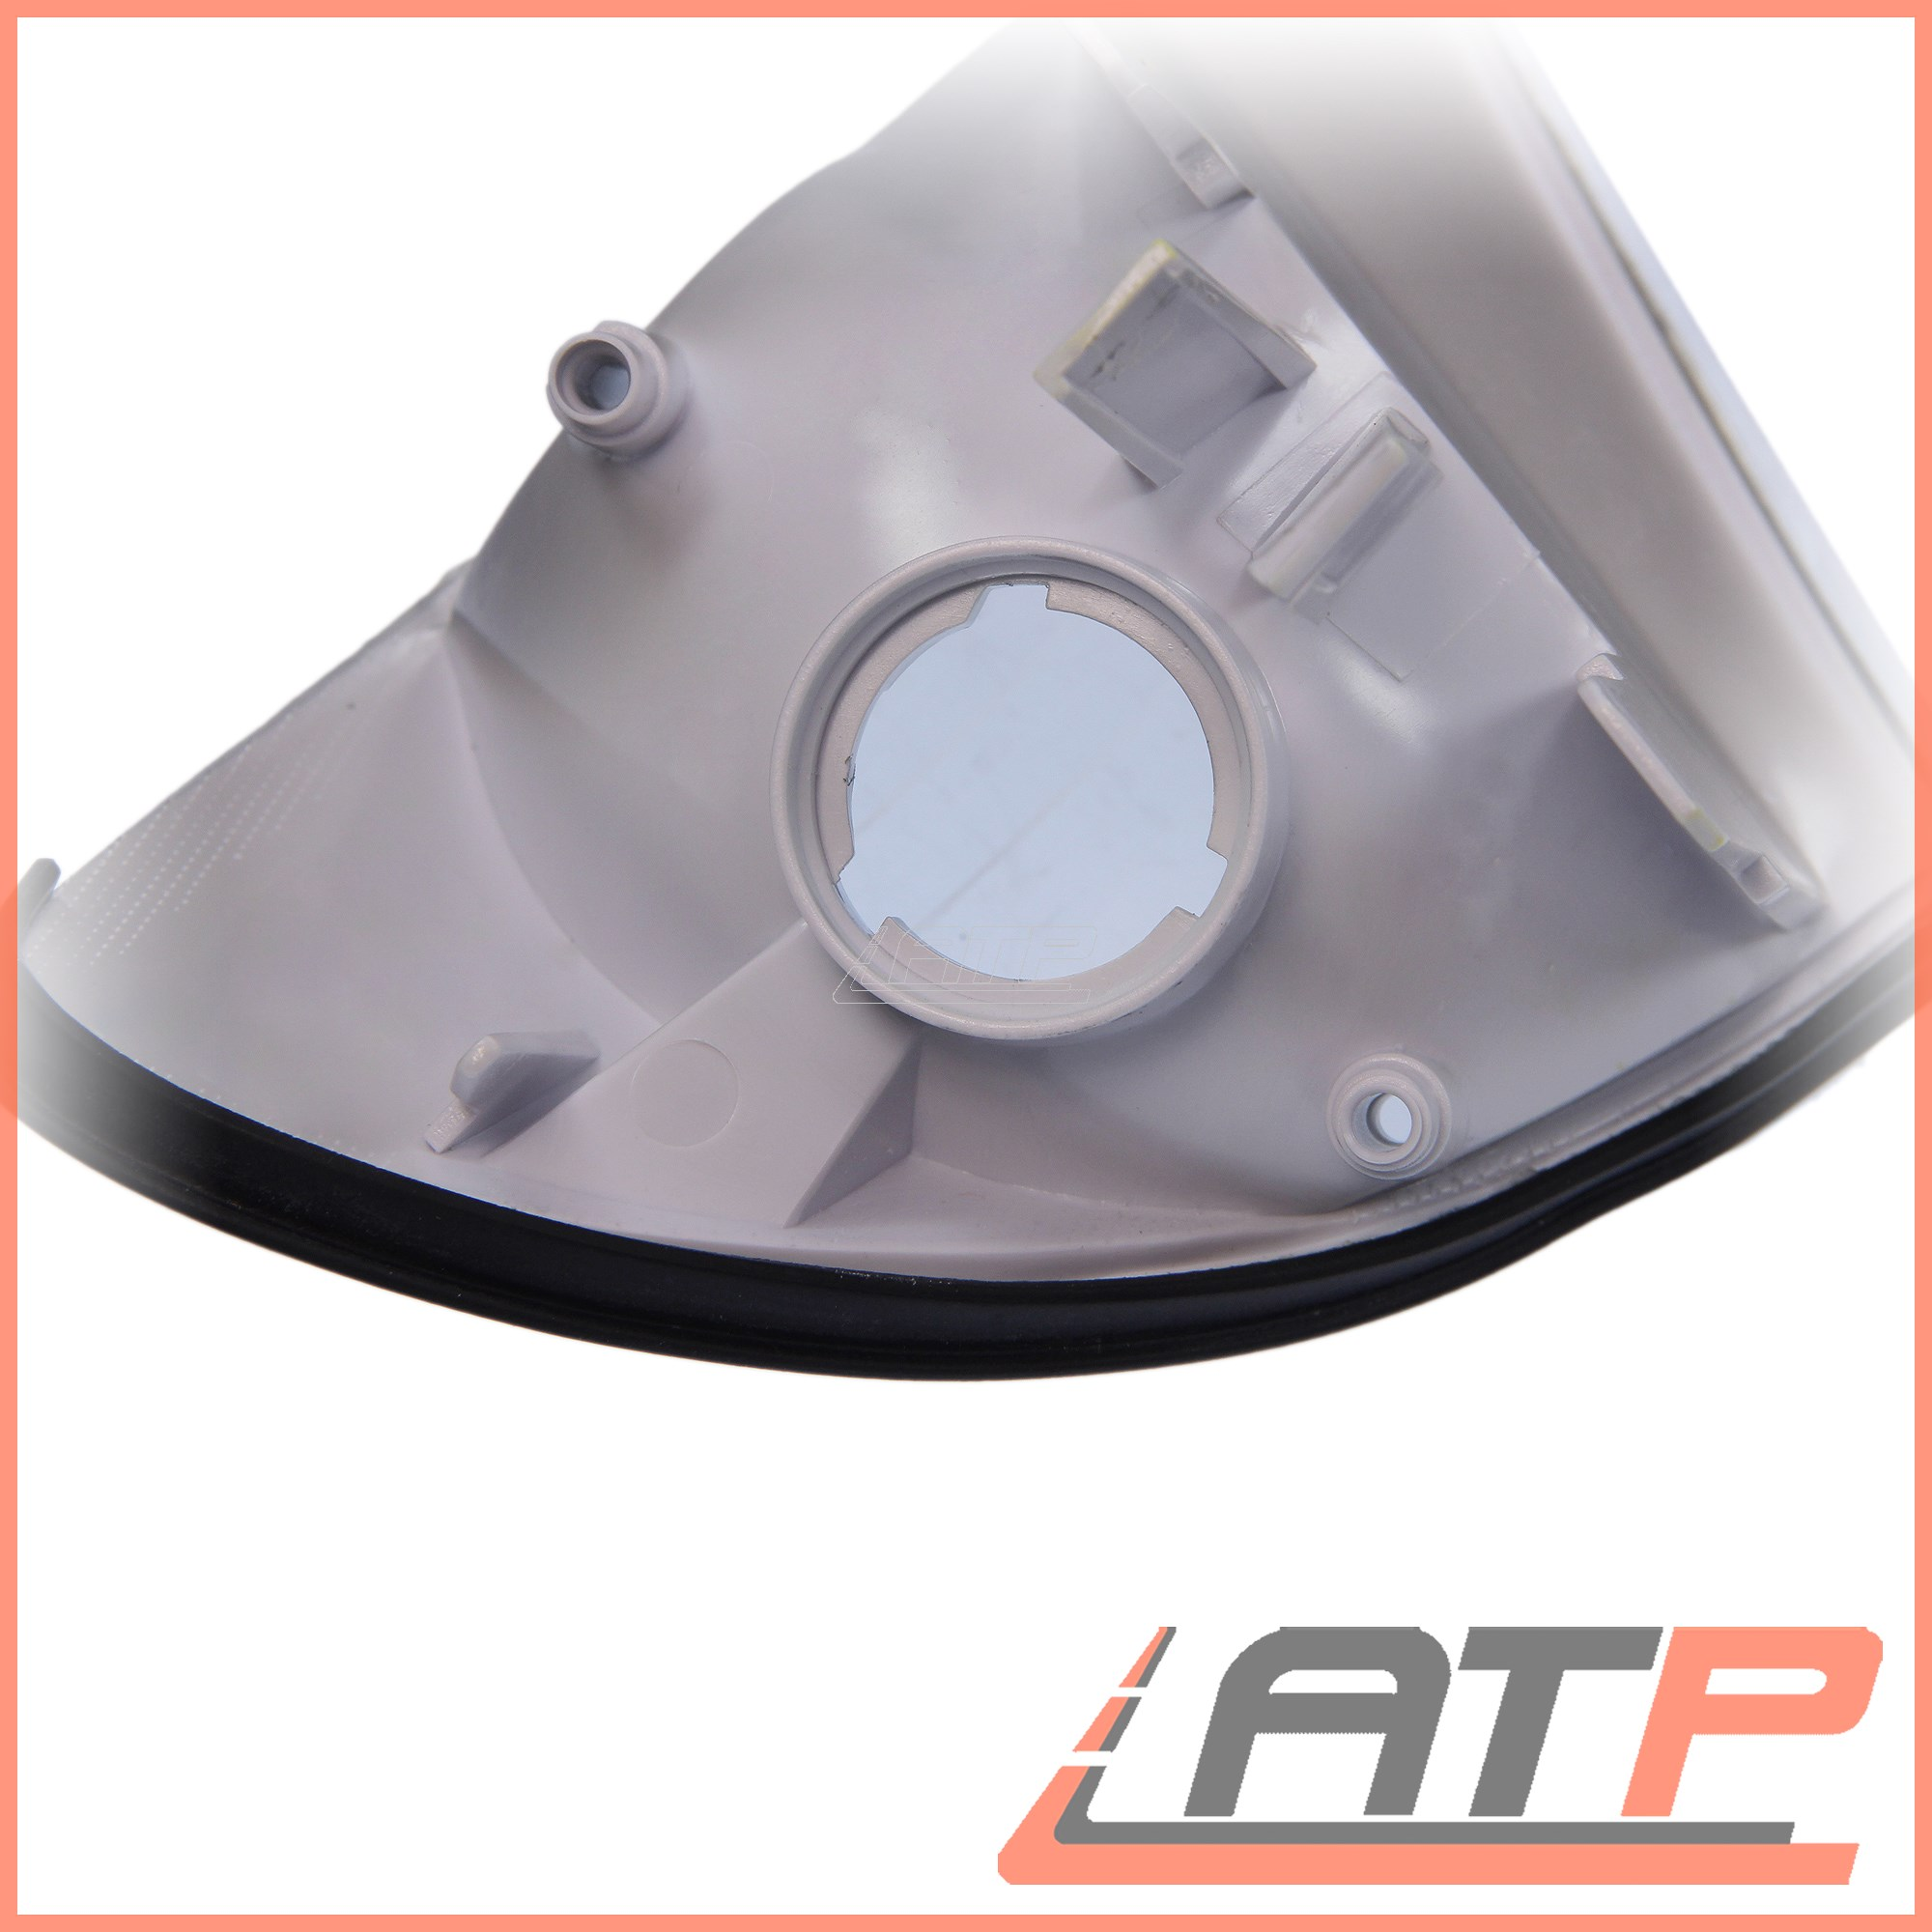 1x-INDICATOR-FRONT-RIGHT-WHITE-LENS-BMW-3-SERIES-E46 thumbnail 6